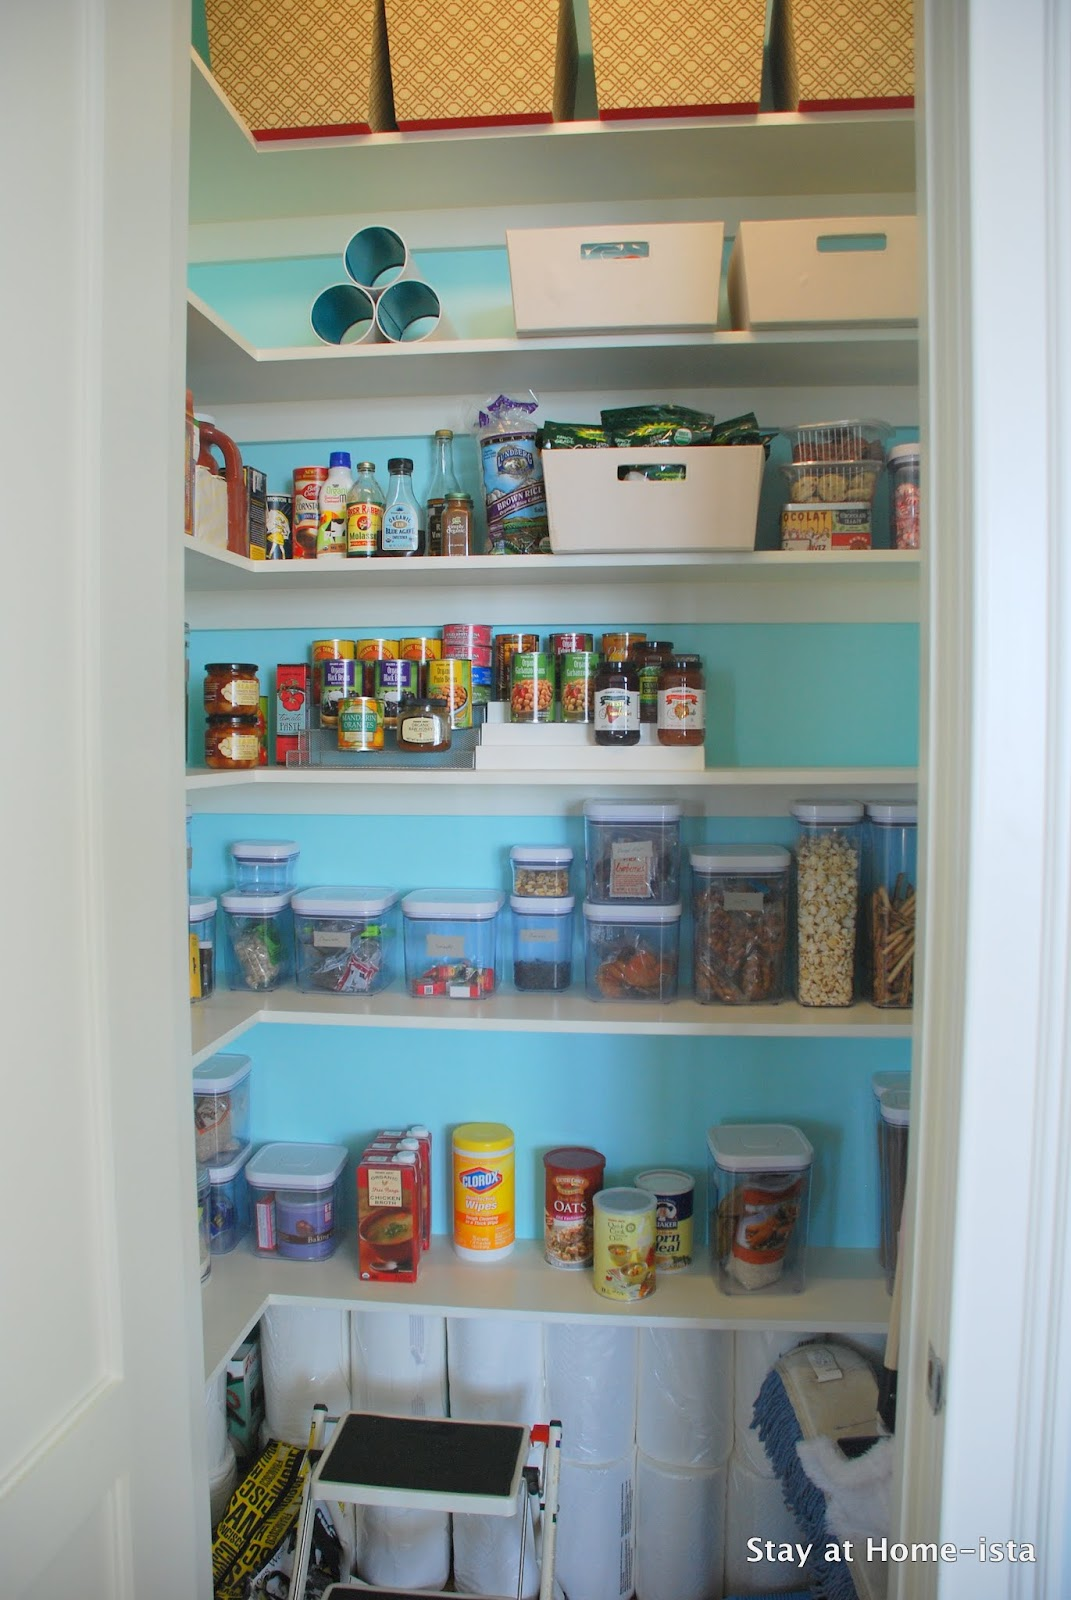 Stay at Home-ista: The Pantry